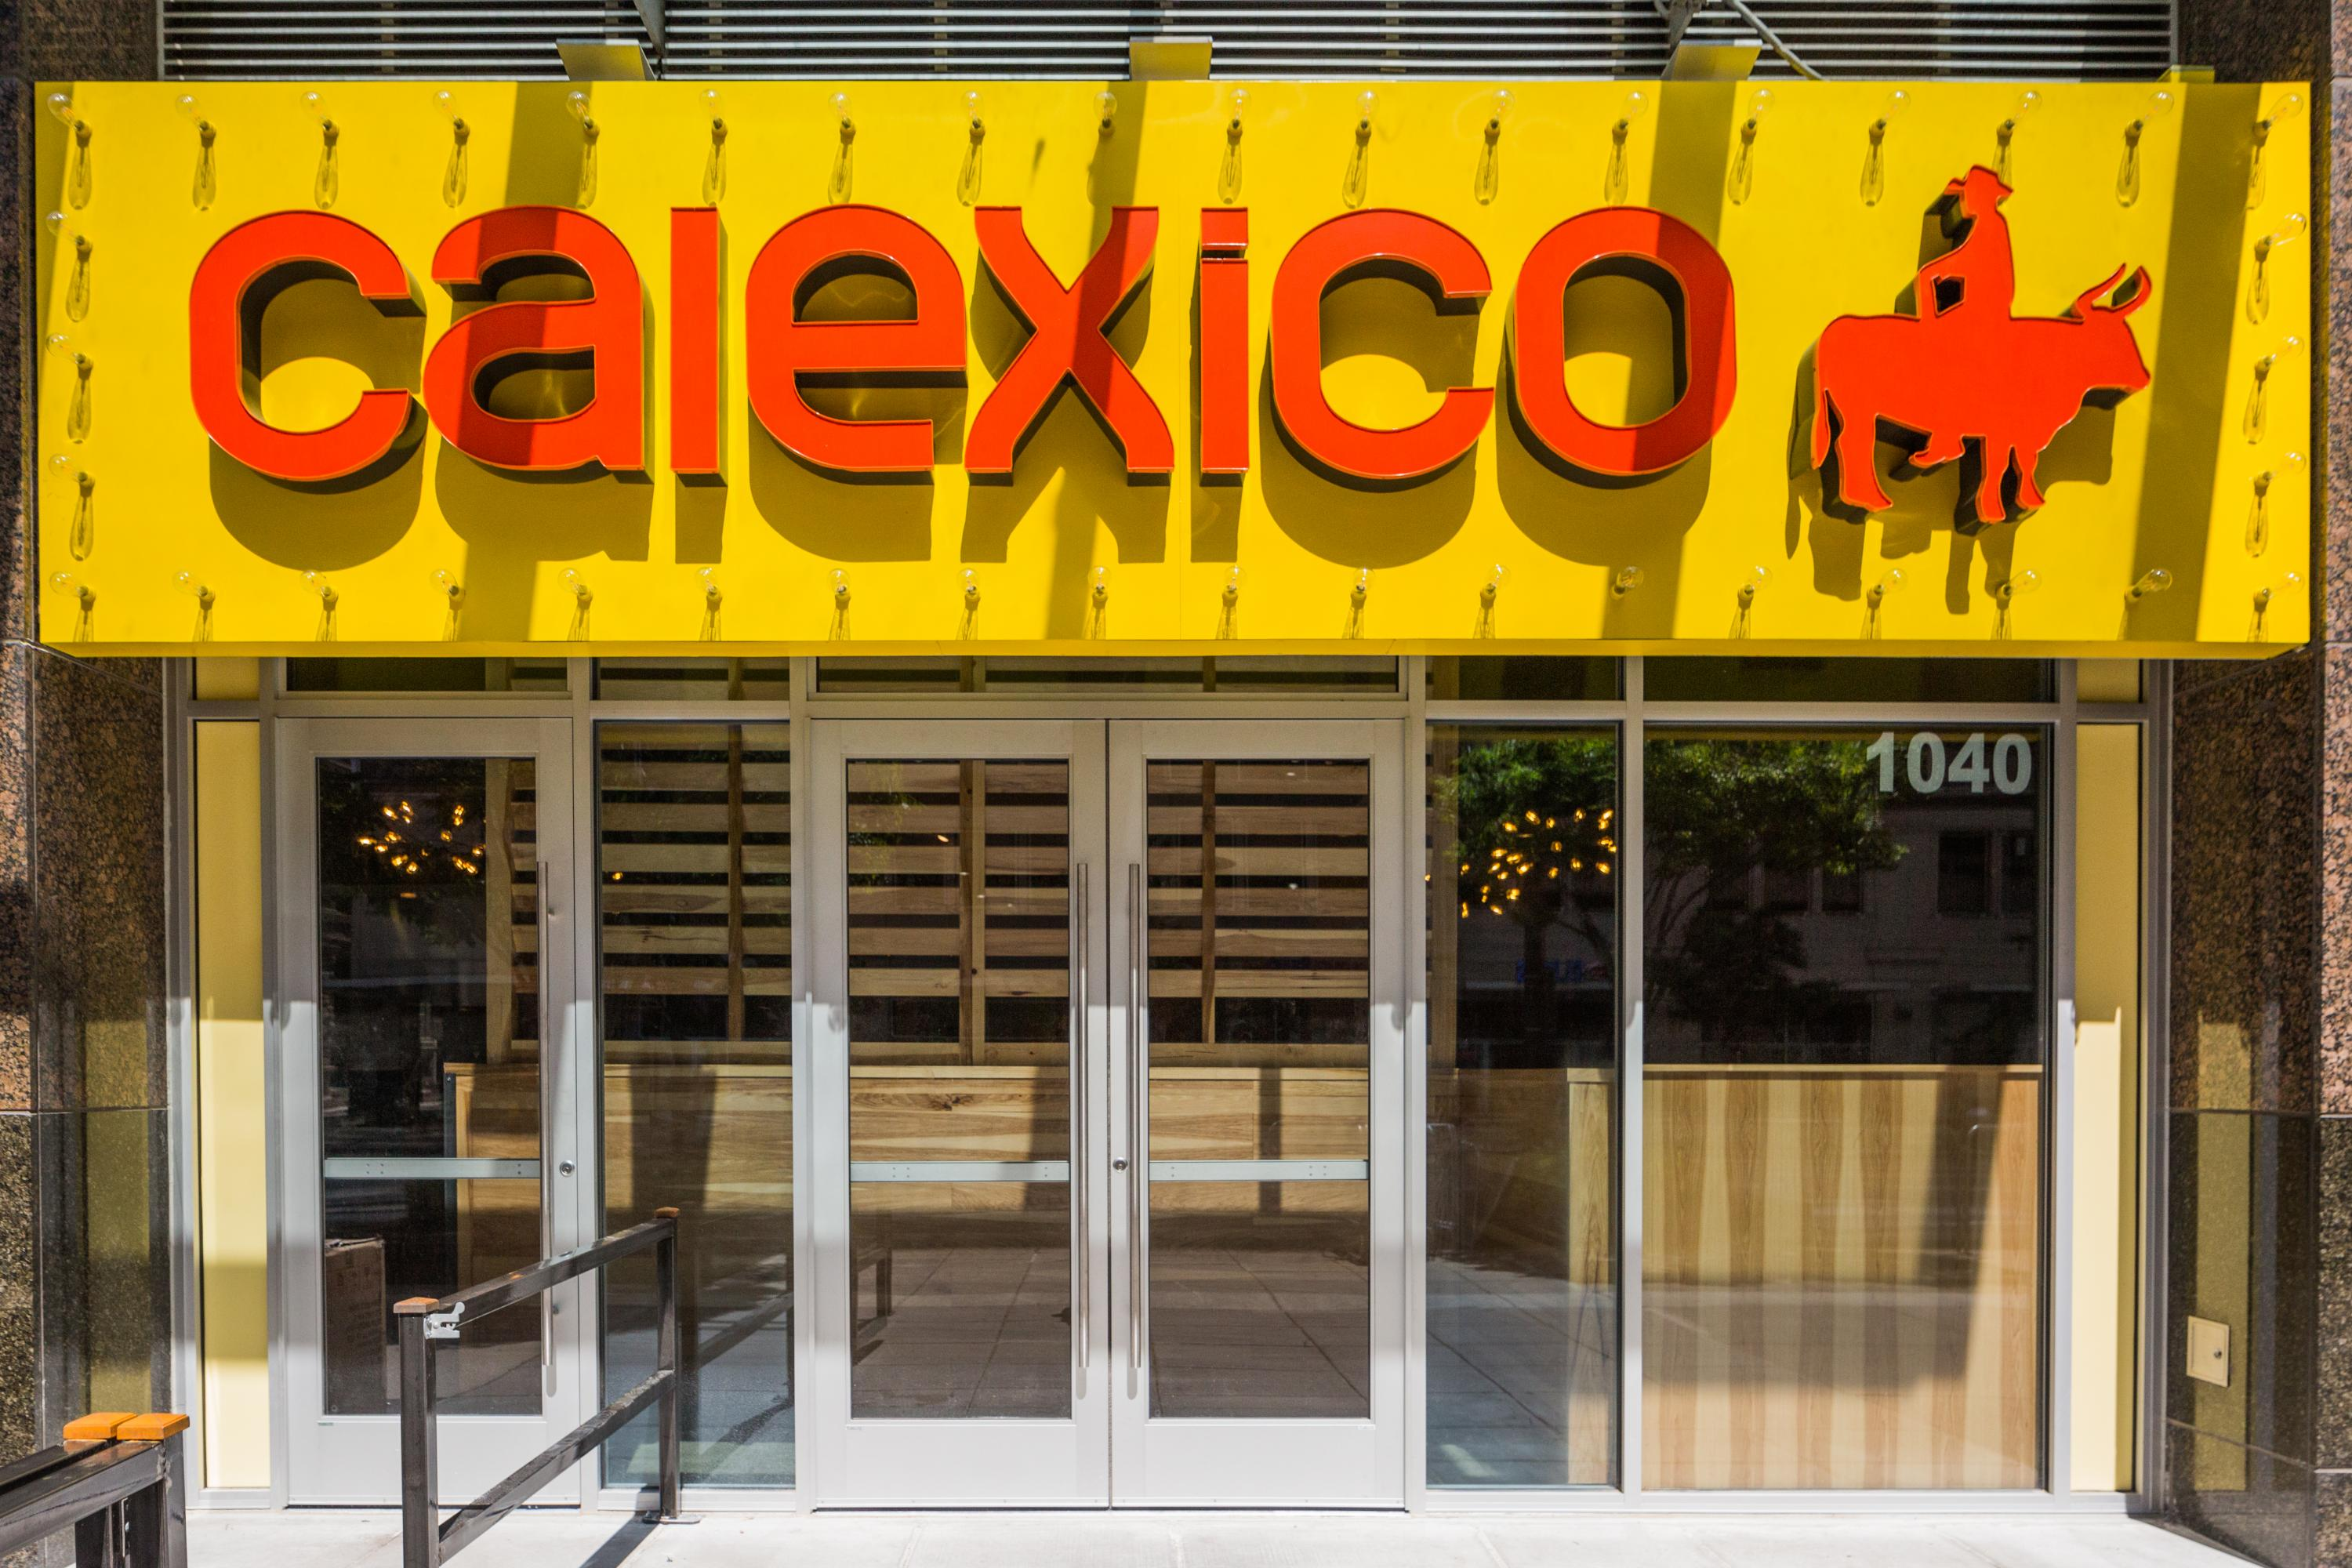 Mexican Restaurant Calexico To Open Next Week In Downtown Detroit